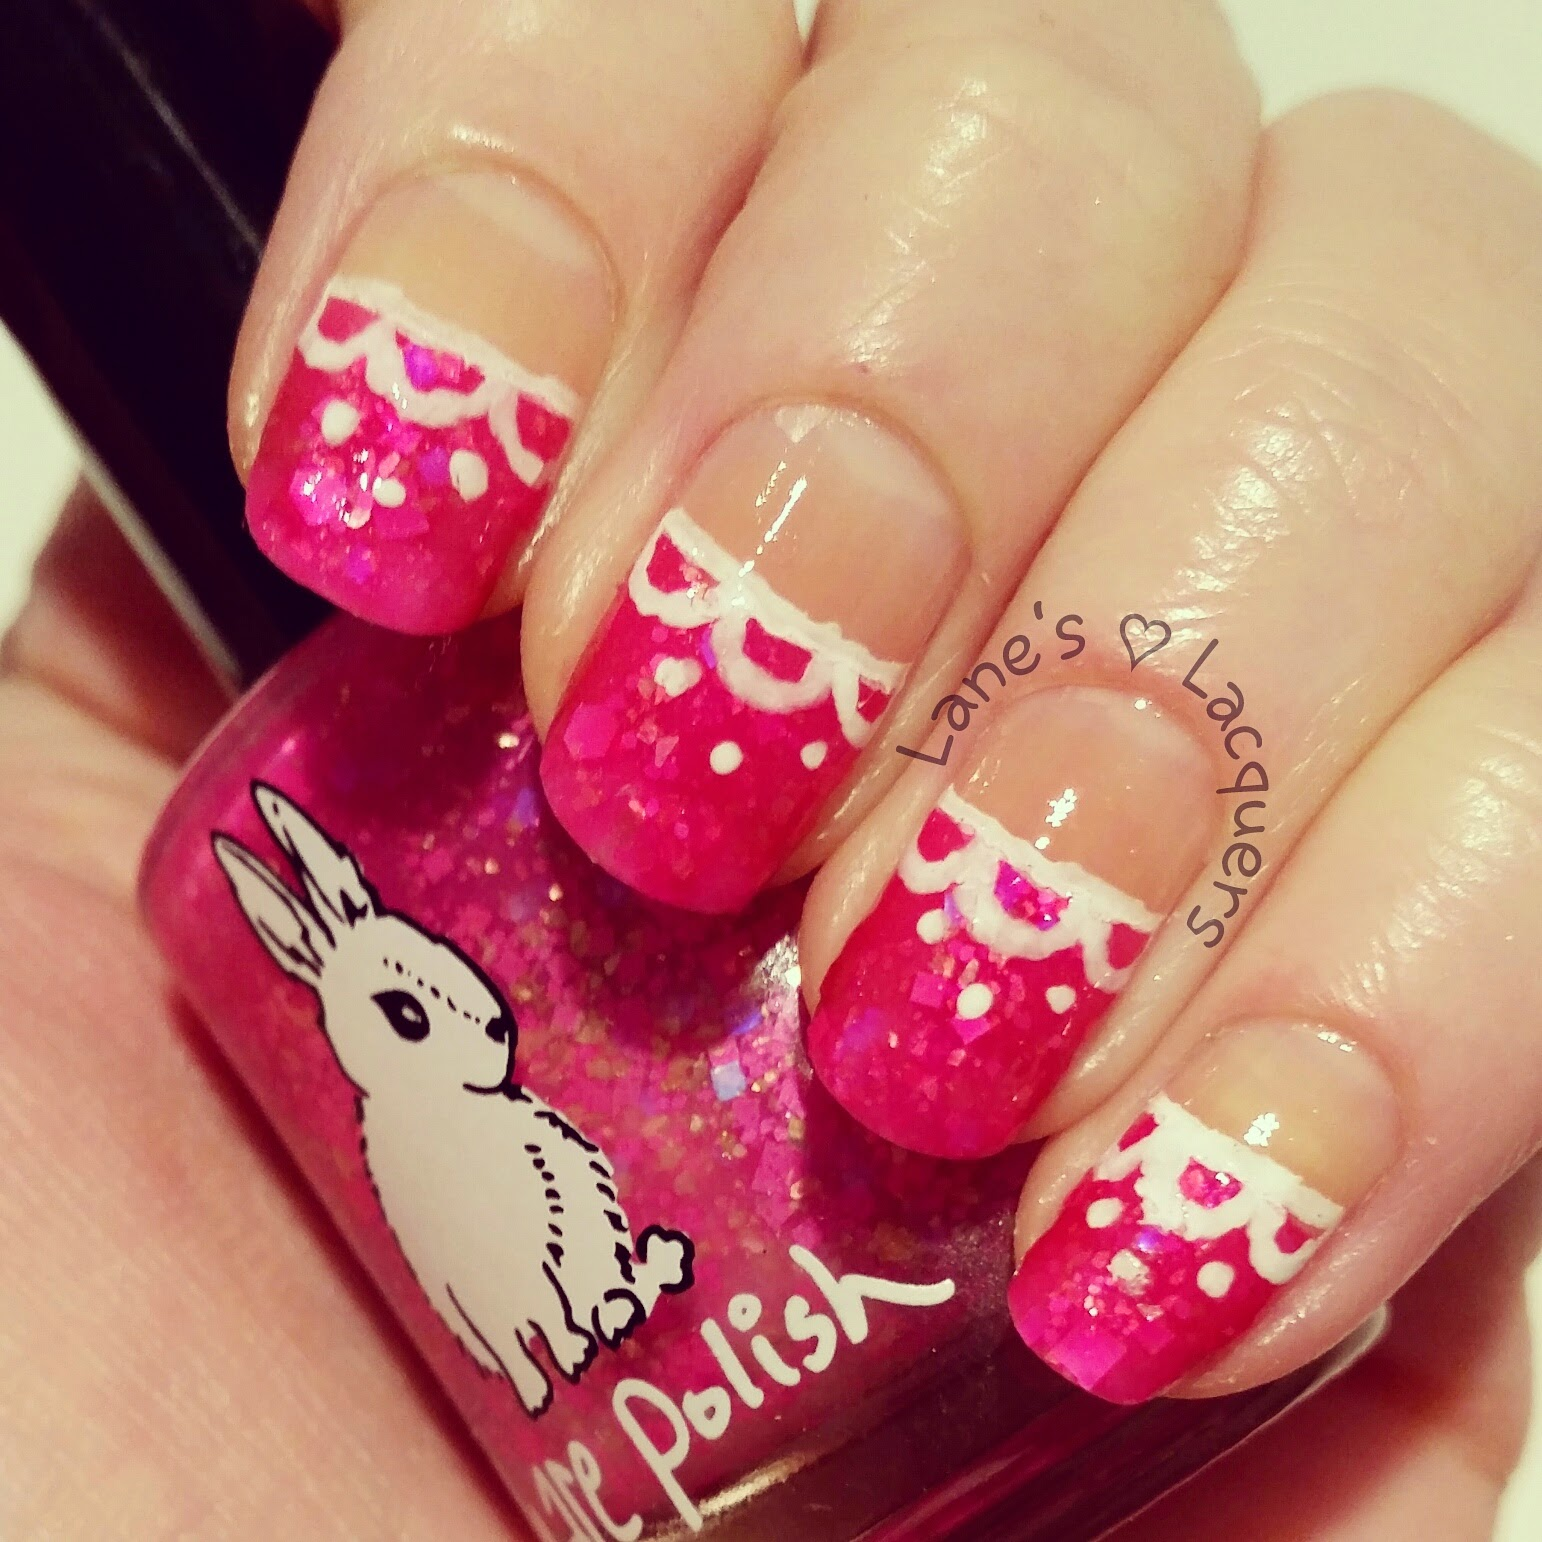 hare-polish-for-the-love-of-lisa-lace-nail-art (2)